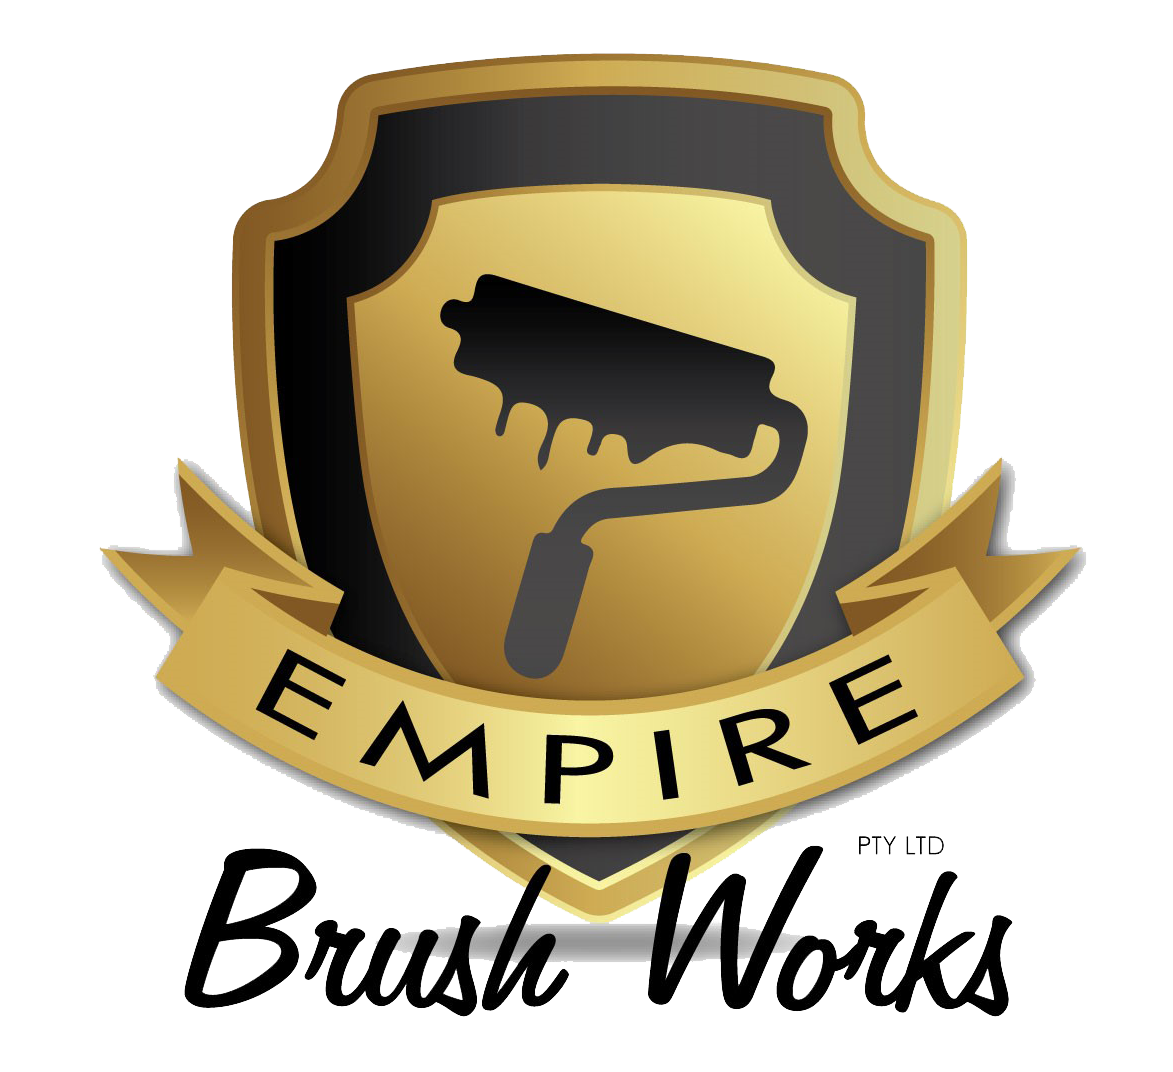 Empire Brush Works